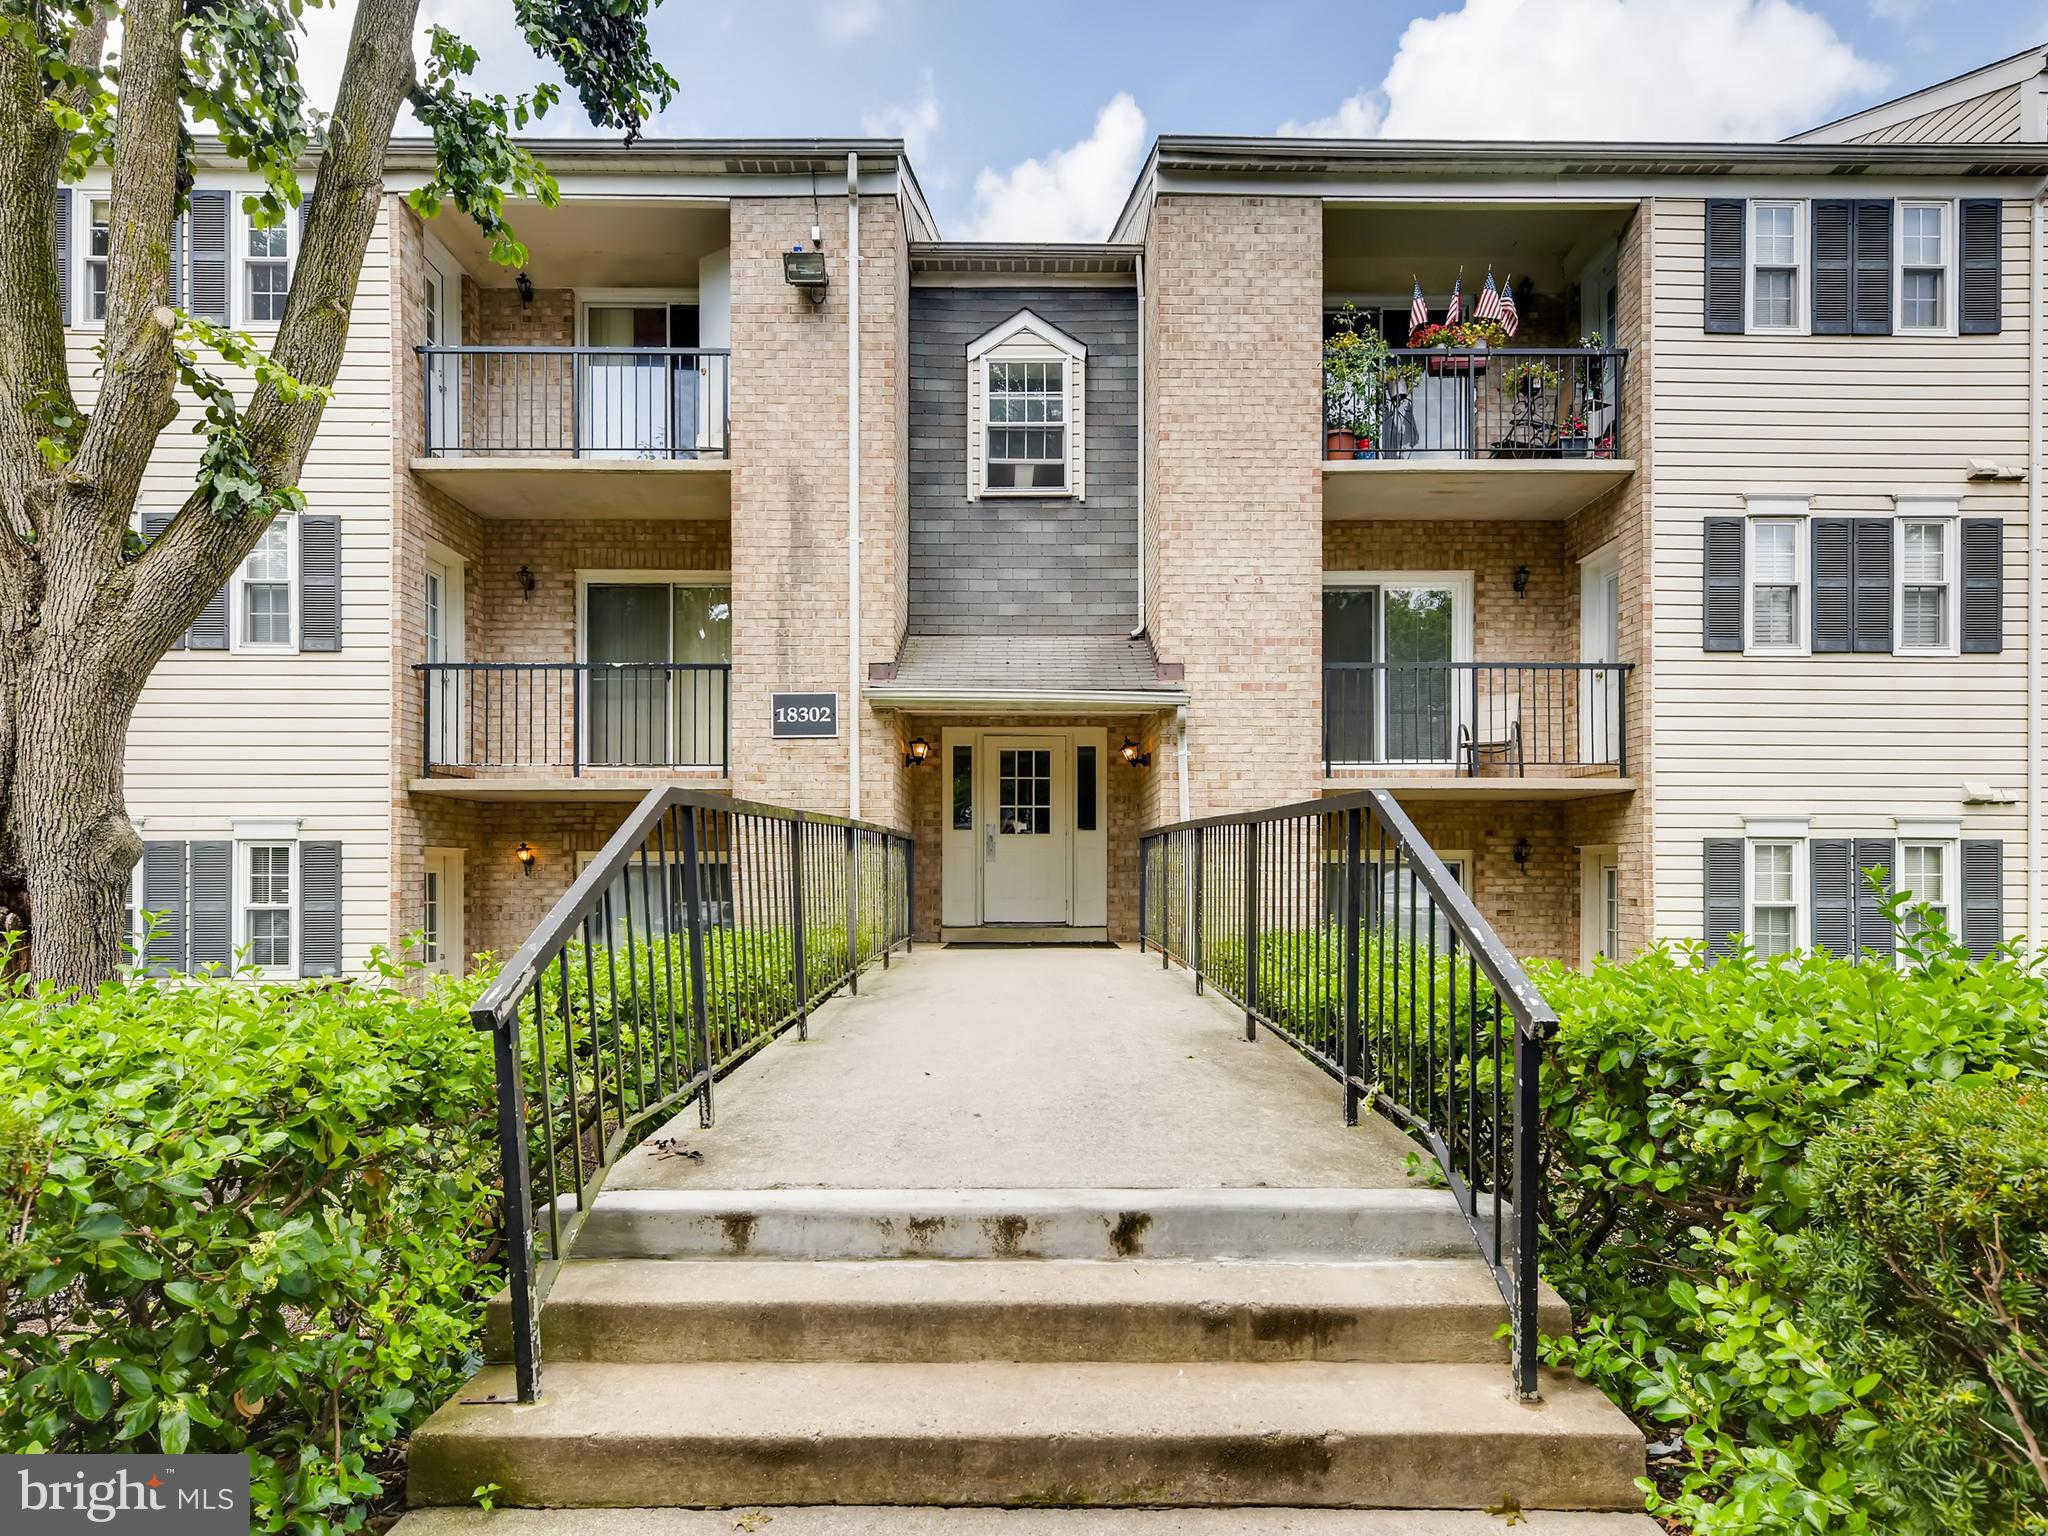 Another Property Sold - 18302 Streamside Drive #101, Gaithersburg, MD 20879